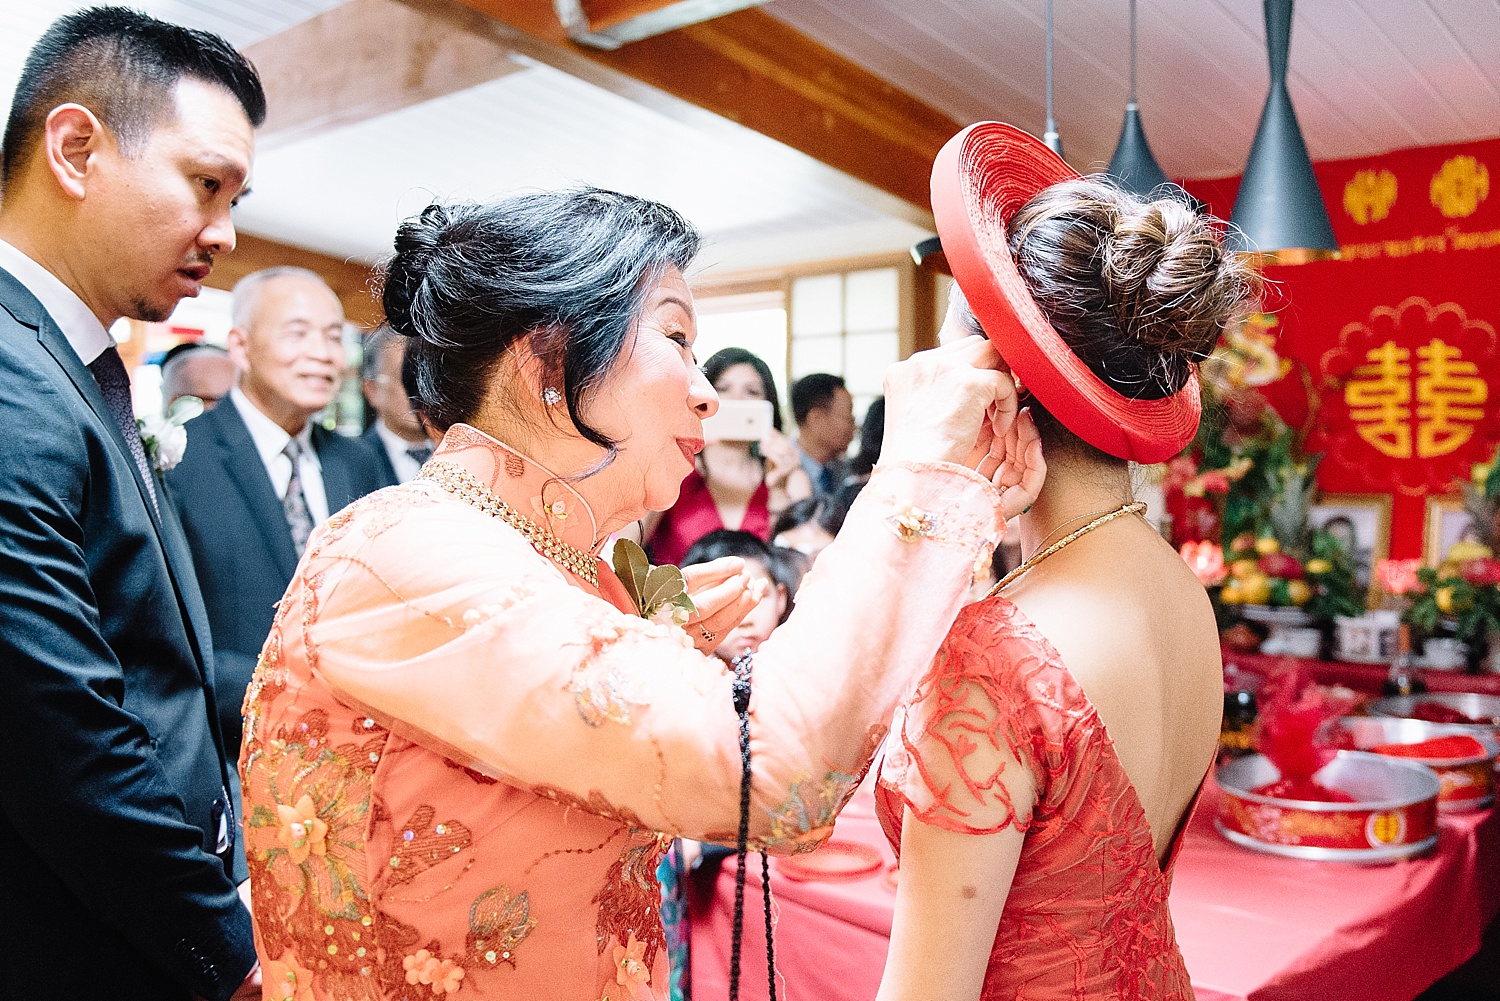 jennifer-jayn-photography-los-altos-wedding-vietnamese-tea-ceremony_0026.jpg